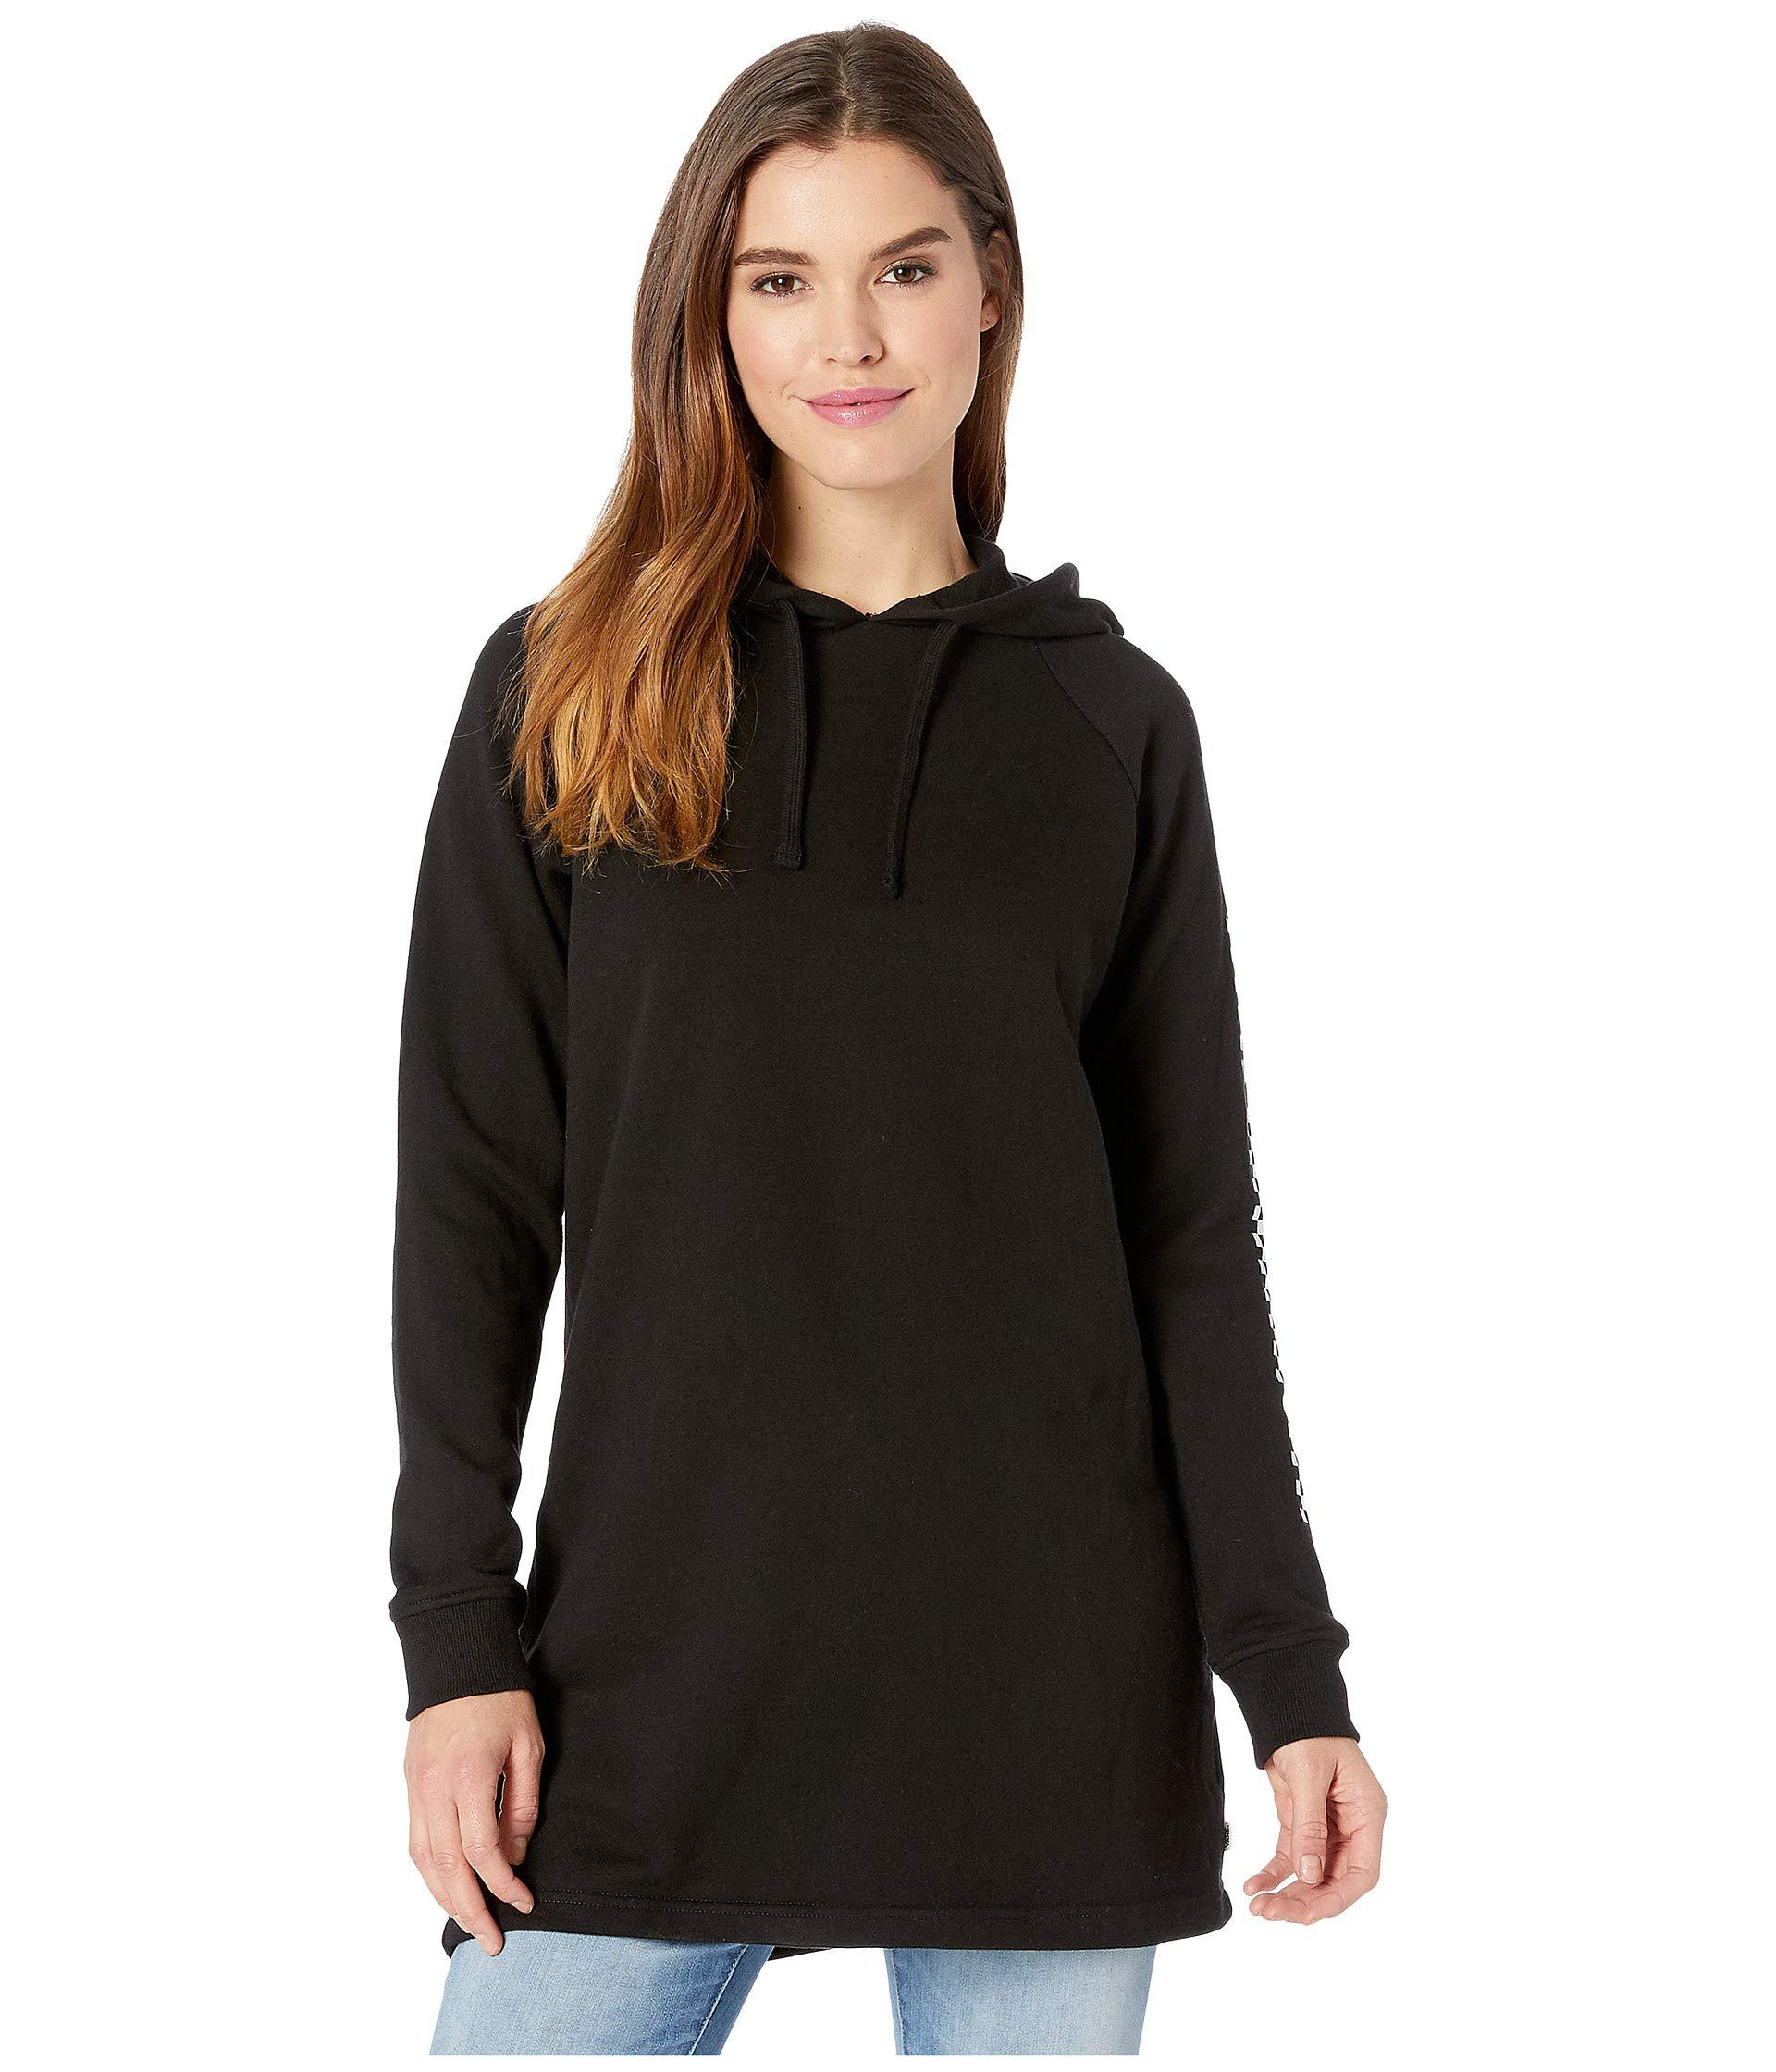 6507d047b9 Lyst - Vans Funday Hoodie Dress (black) Women s Dress in Black